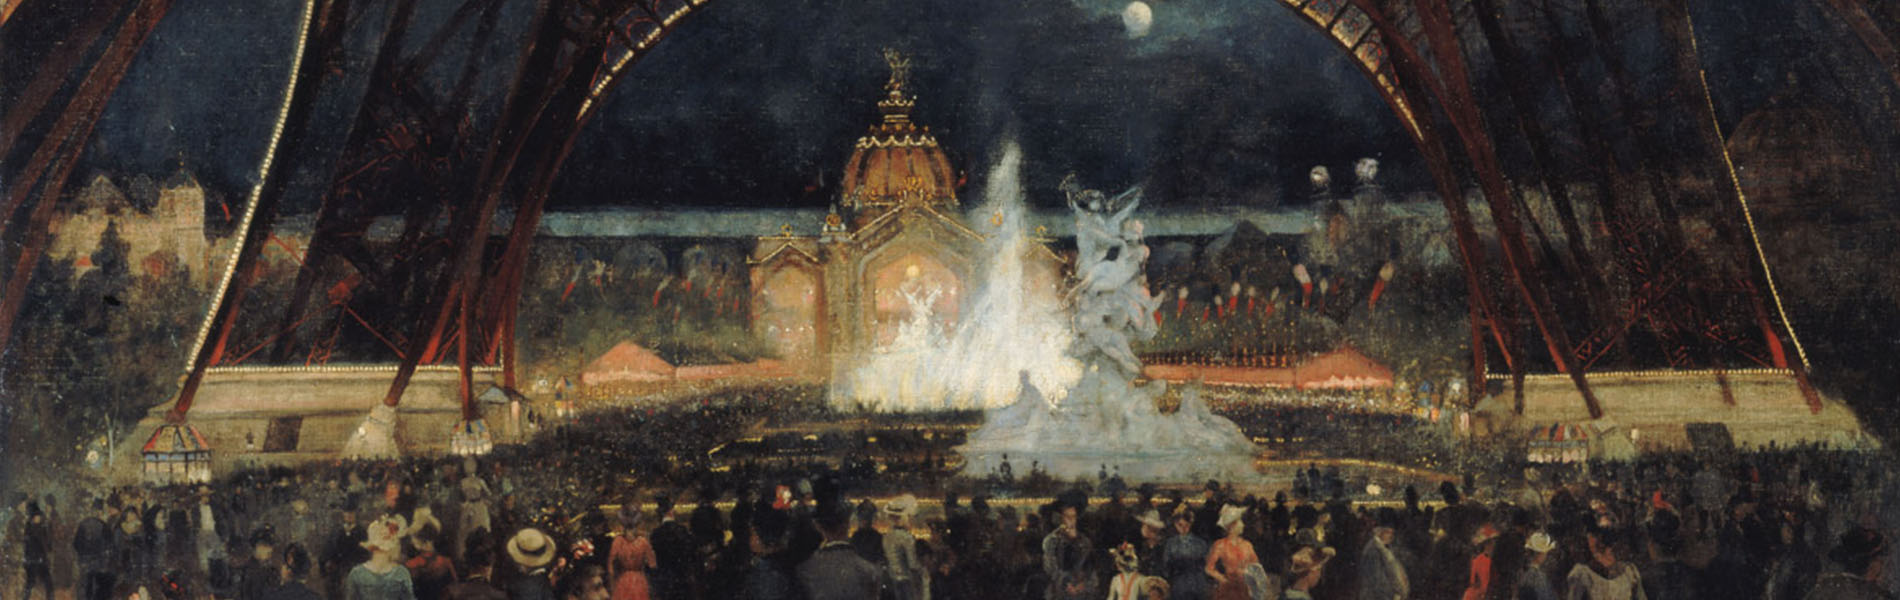 Georges-Roux-Night-Party-at-the-Universal-Exhibition-in-1889-under-the-Eiffel-Tower_MAIN.jpg